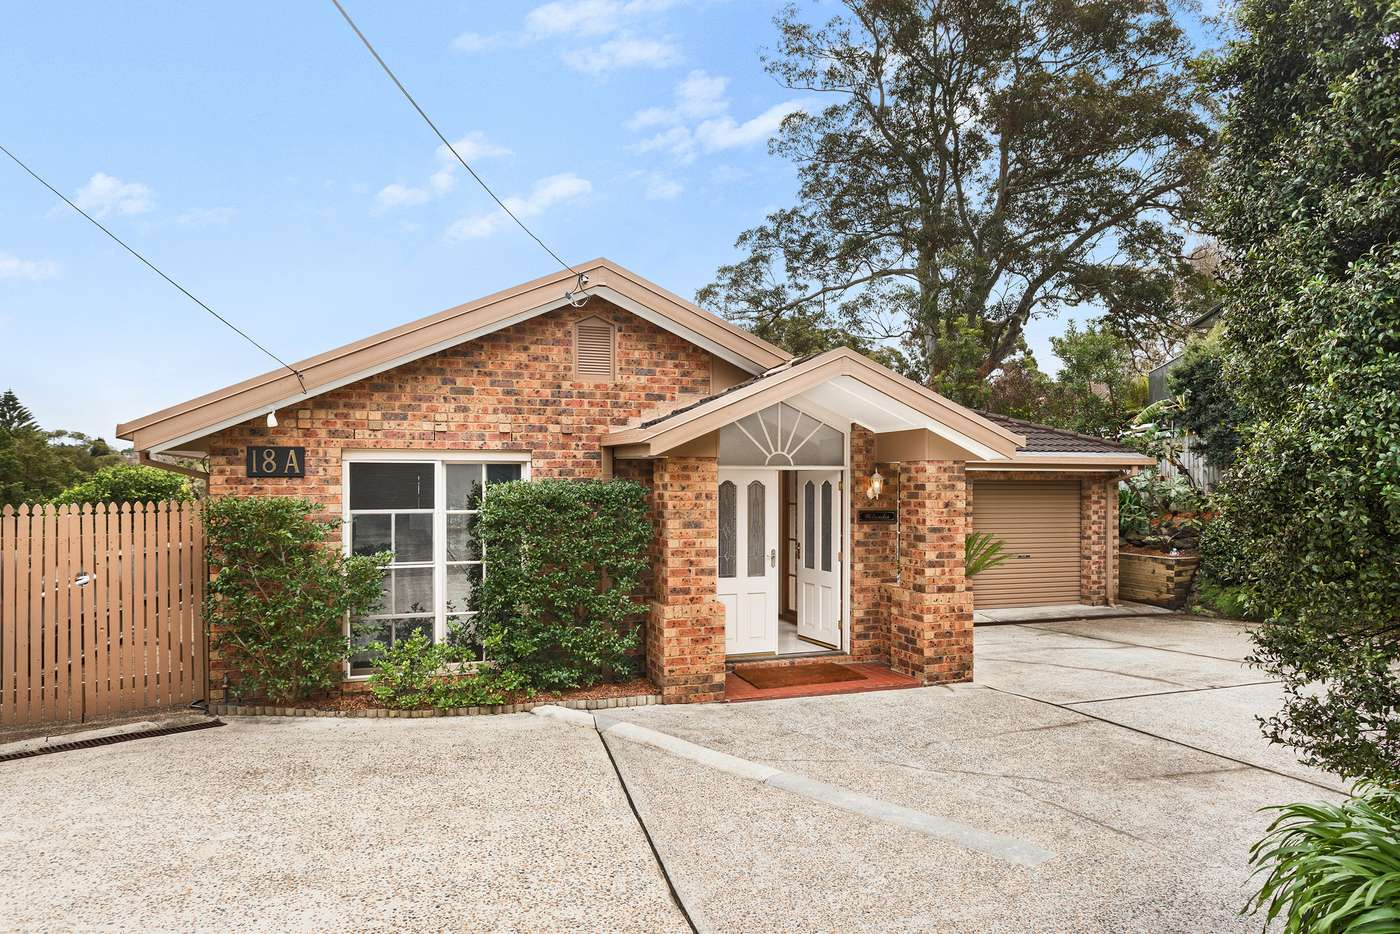 Main view of Homely house listing, 18A Willandra Road, Beacon Hill NSW 2100